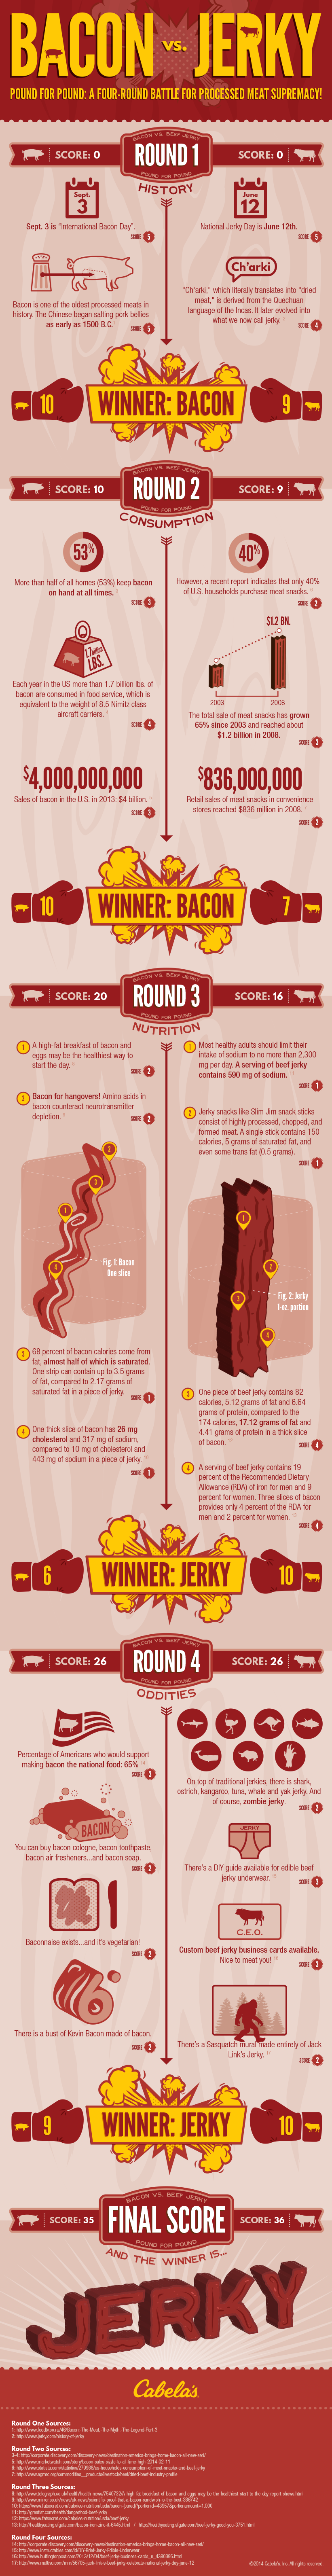 Cabelas-Bacon_vs_Jerky-Infographic-v04_Final.png